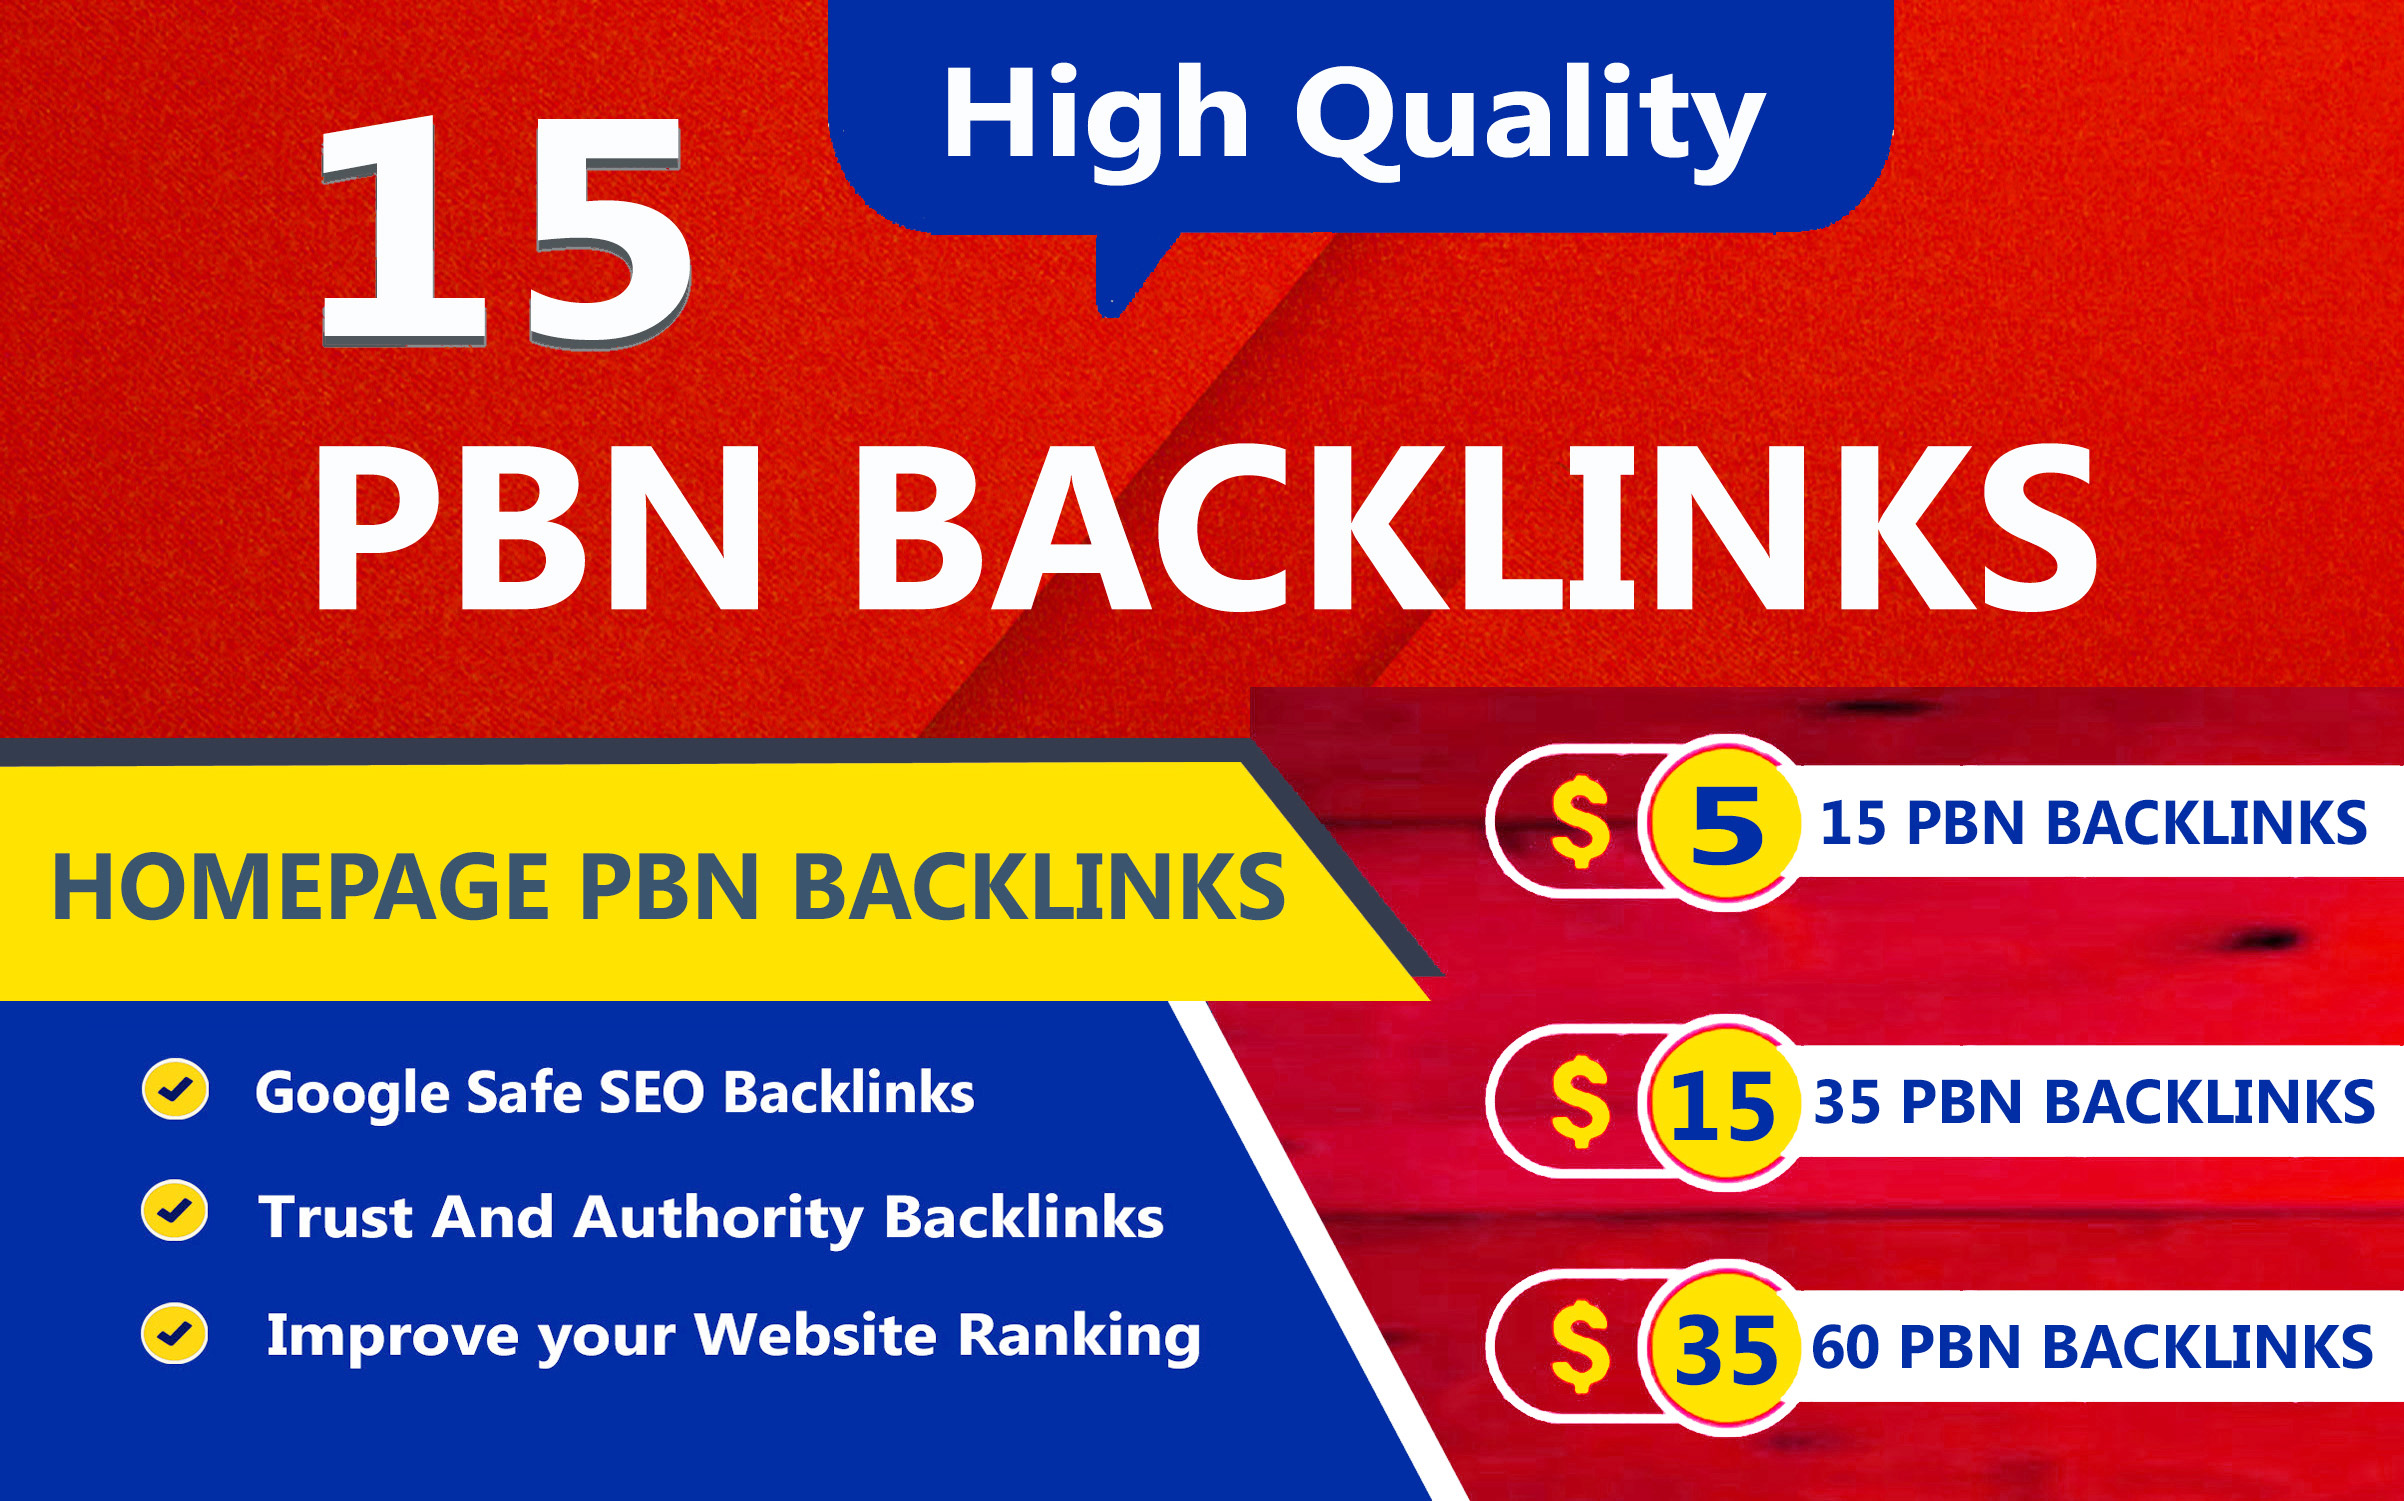 15 DR 50 to 60 High Quality pbn backlinks